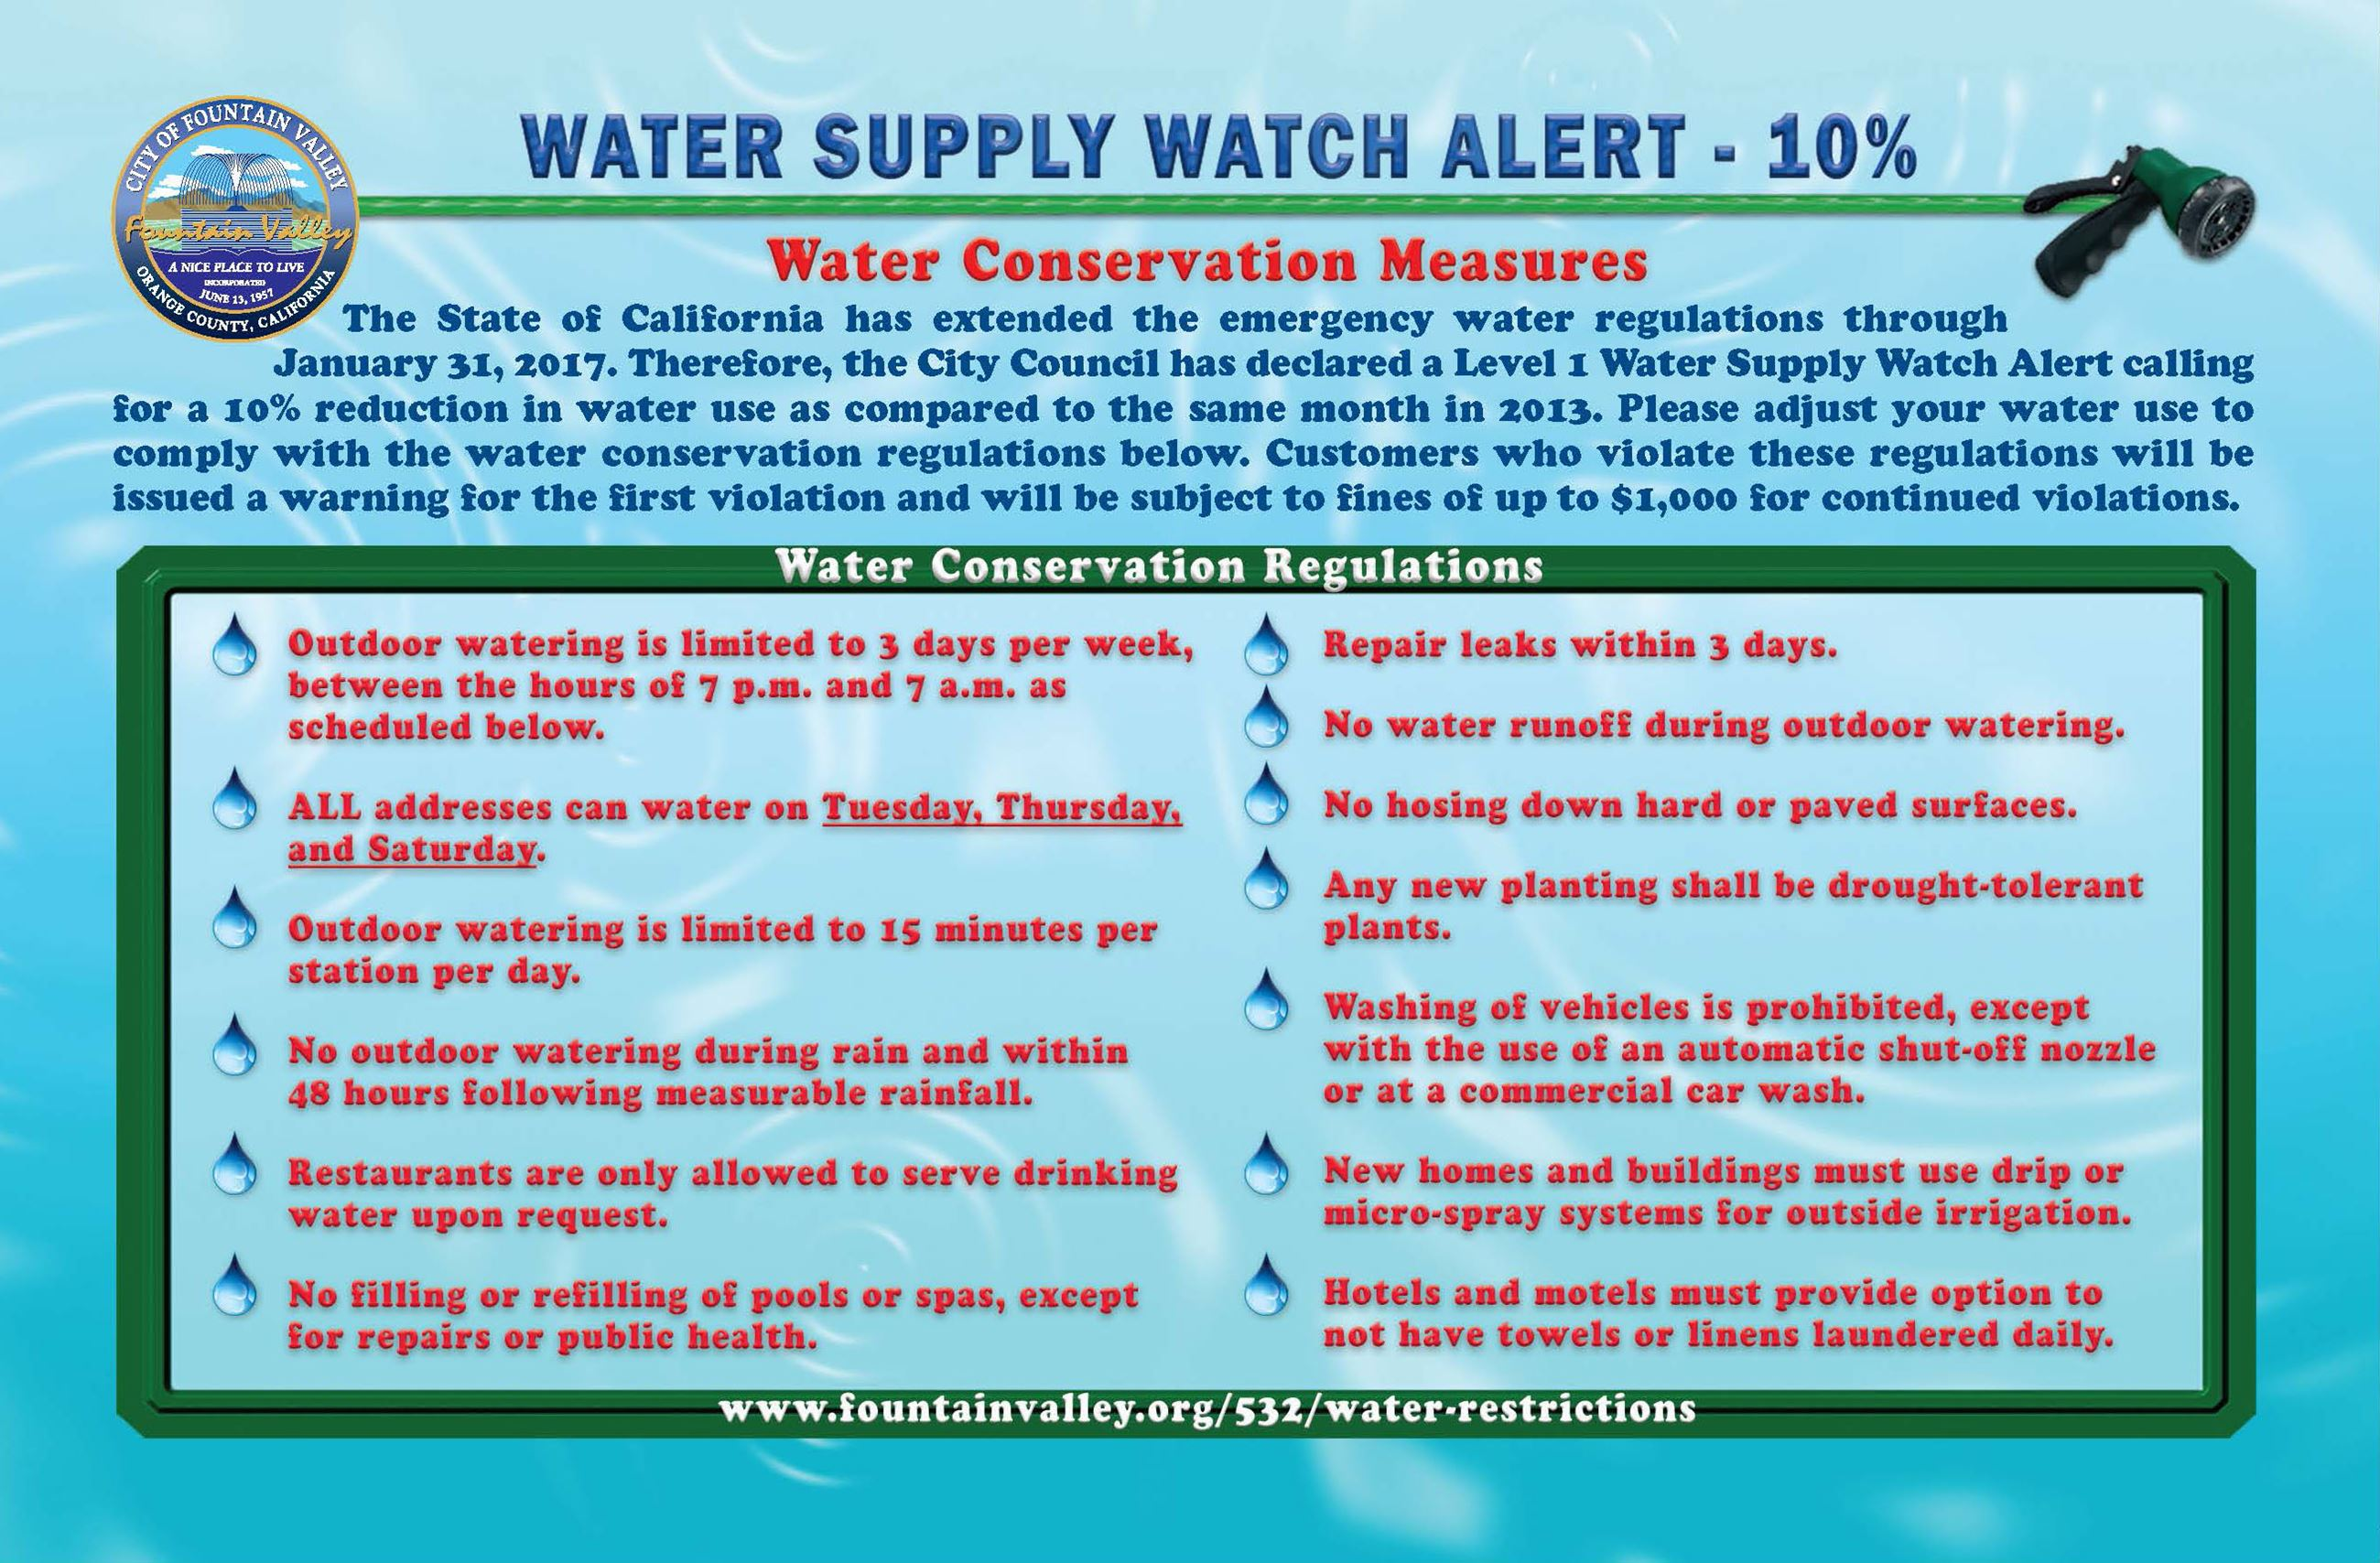 FV Water Conservation Regulations